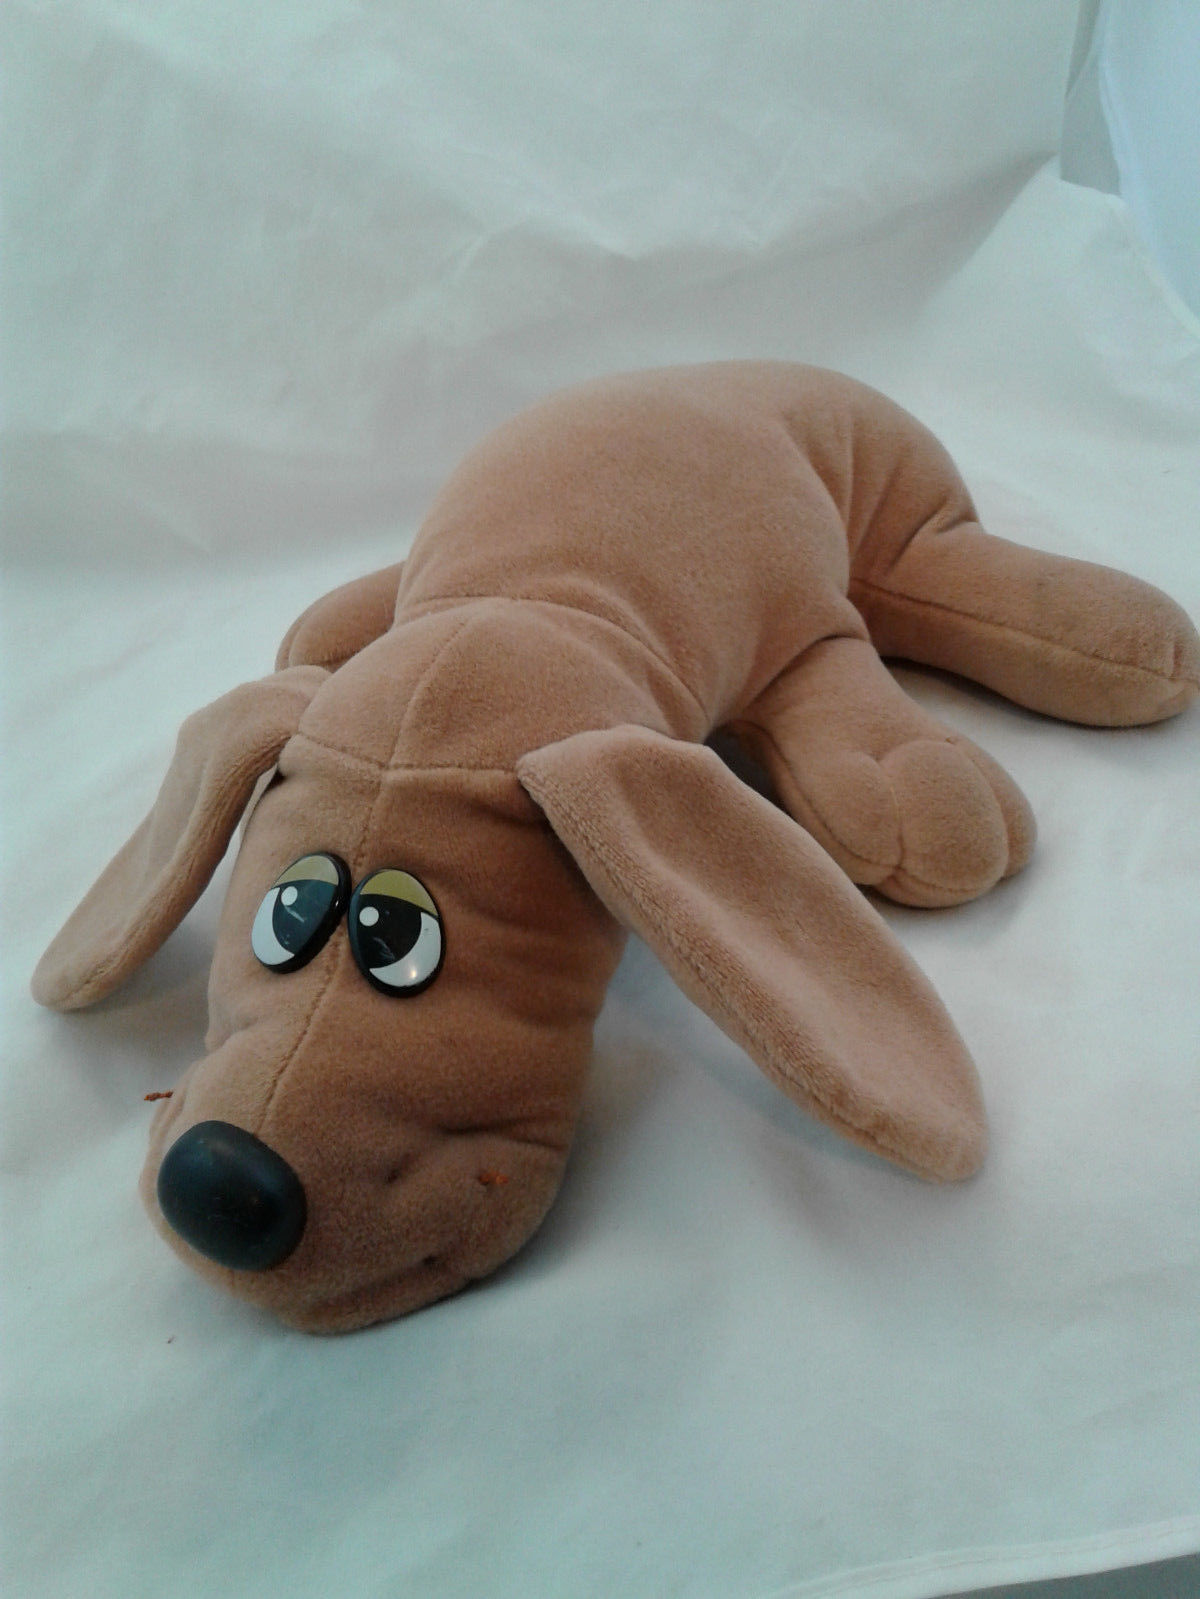 1985 Tonka Pound Puppies Plush Stuffed Toy and 12 similar items